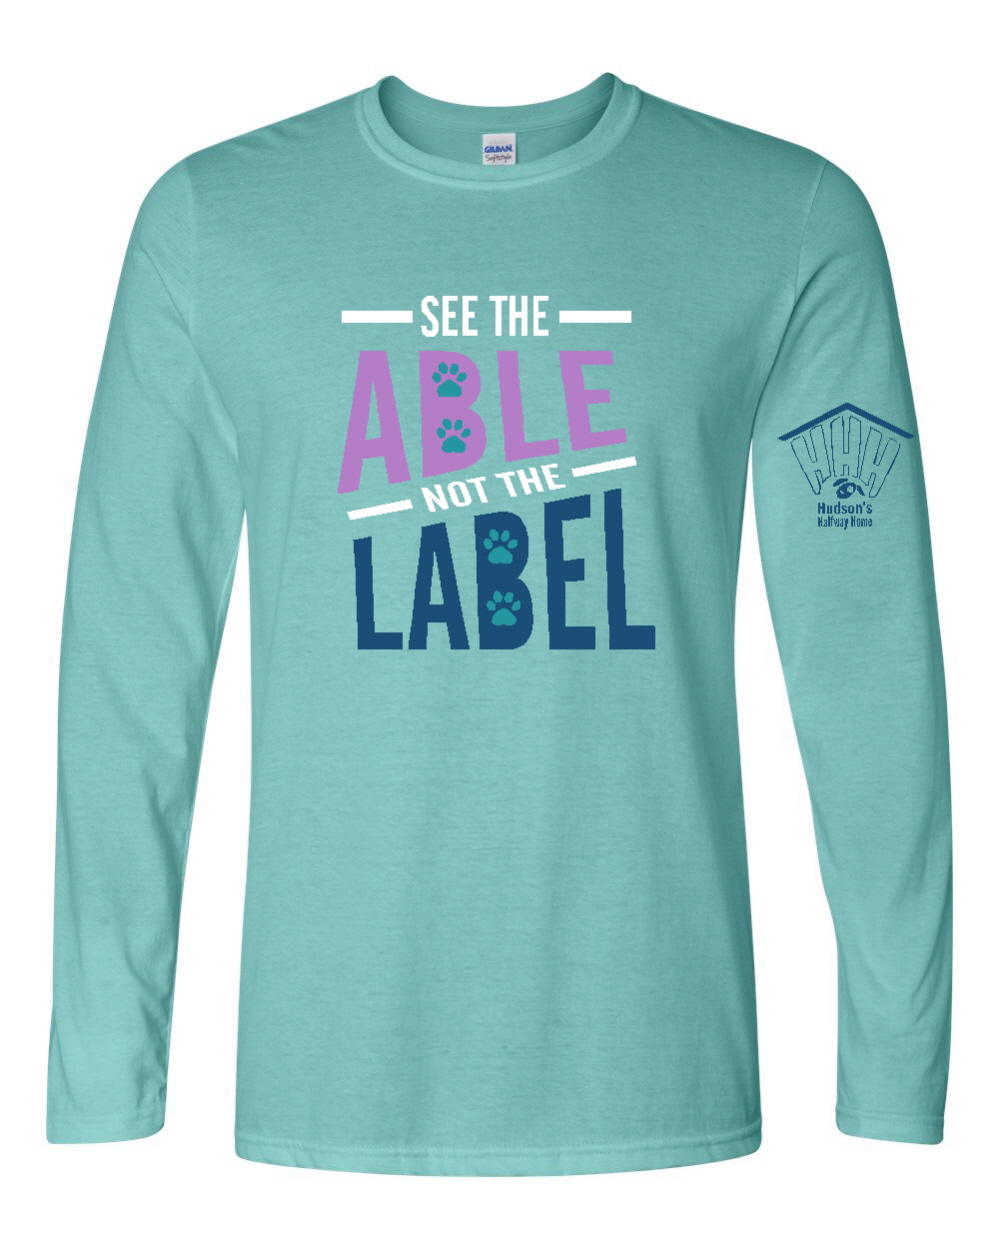 See the Able not the Label